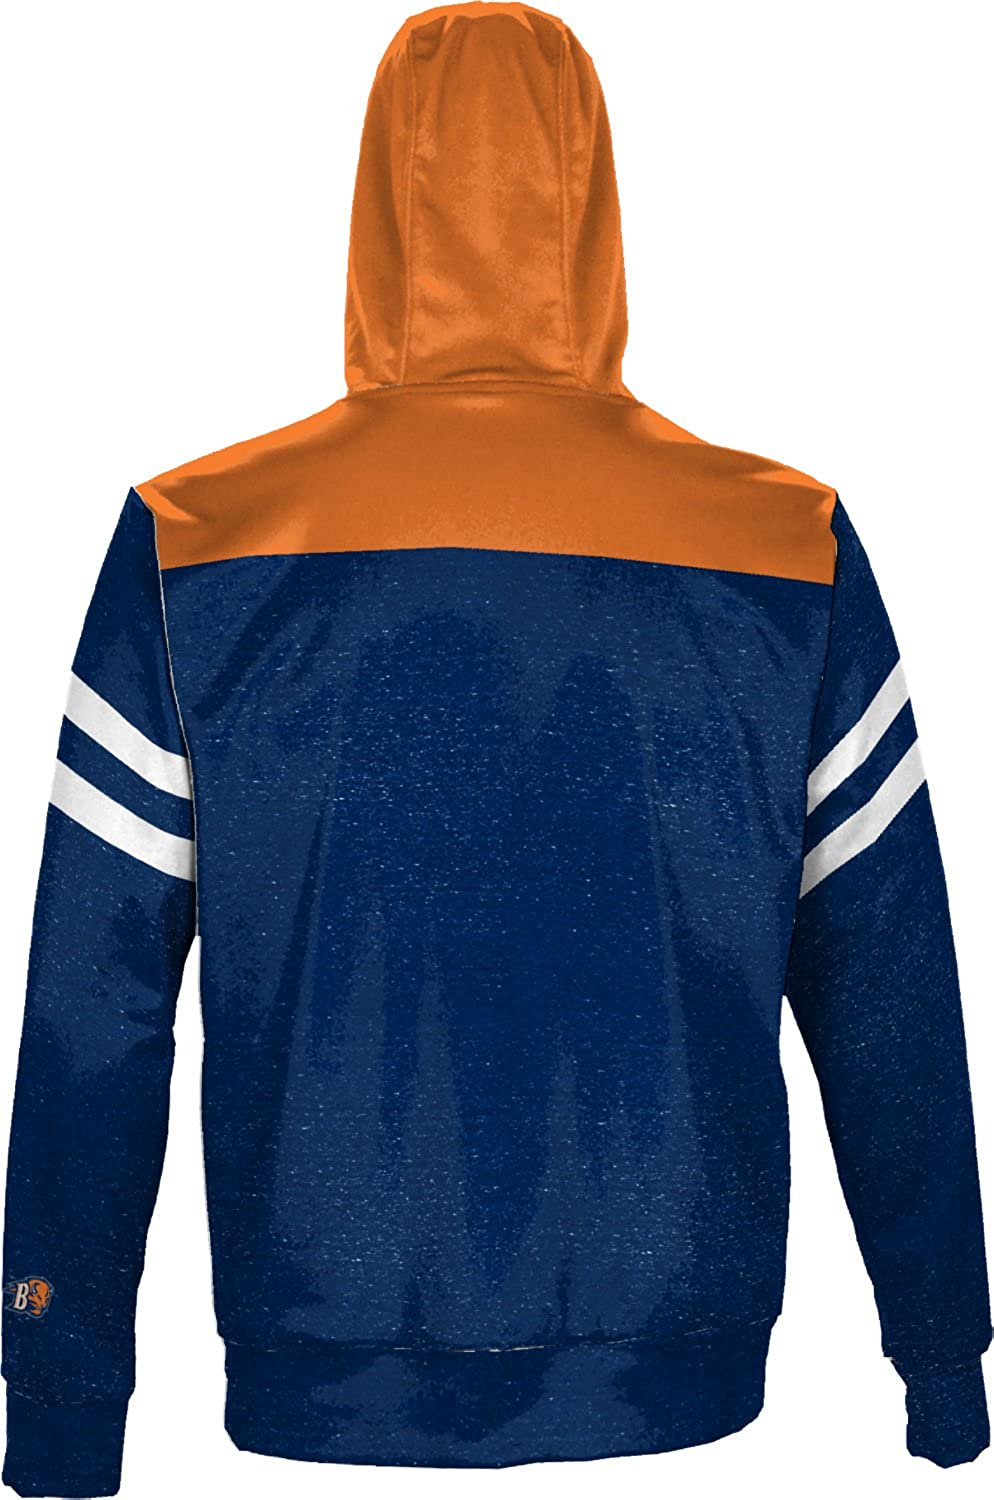 ProSphere Bucknell University Boys Pullover Hoodie Game Time